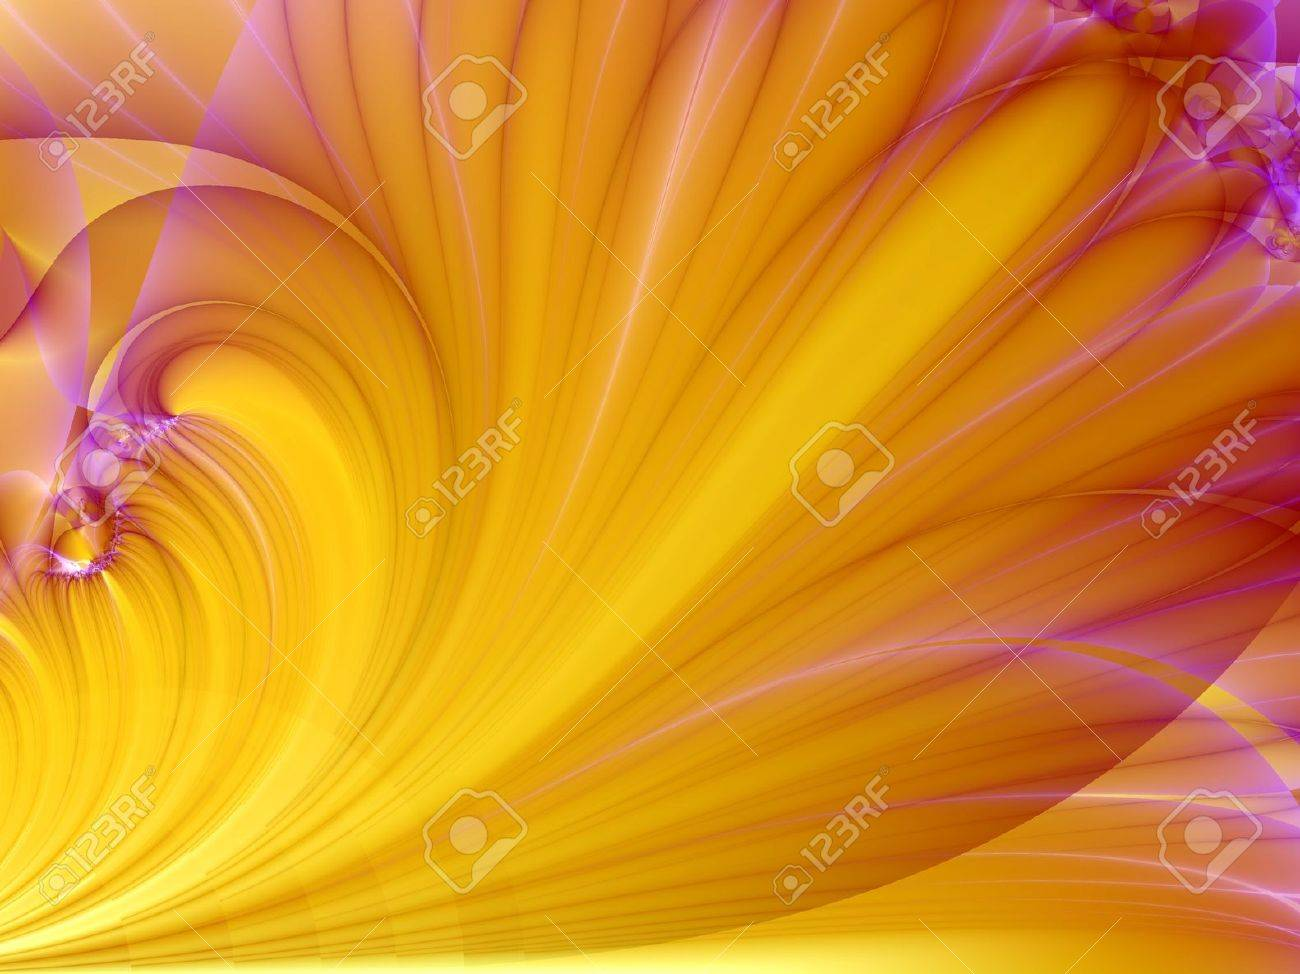 A fractal concept image,created with digital software,designed for background, web wallpaper template. Stock Photo - 4232224